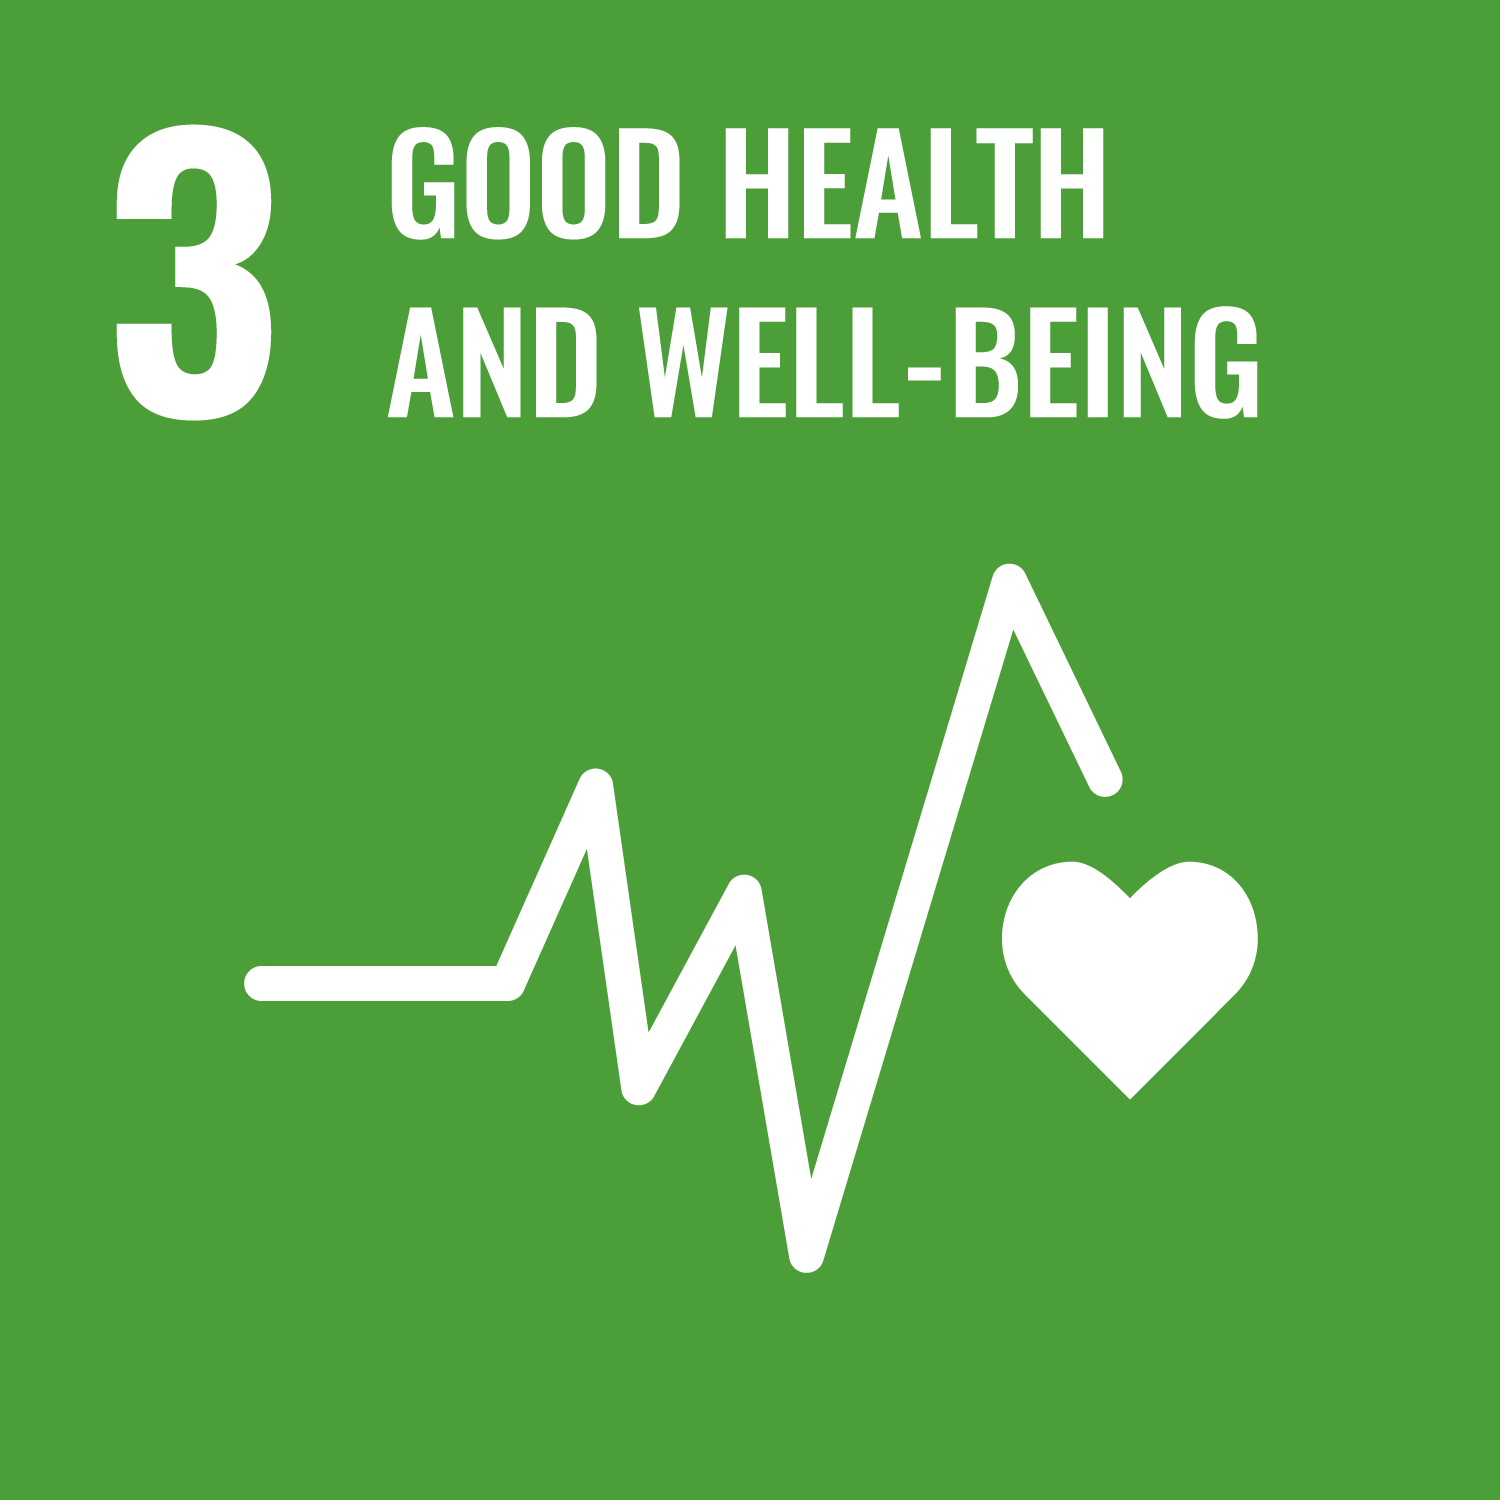 Sustainable Development Goal 3. Ensure healthy lives and promote well-being for all at all ages.